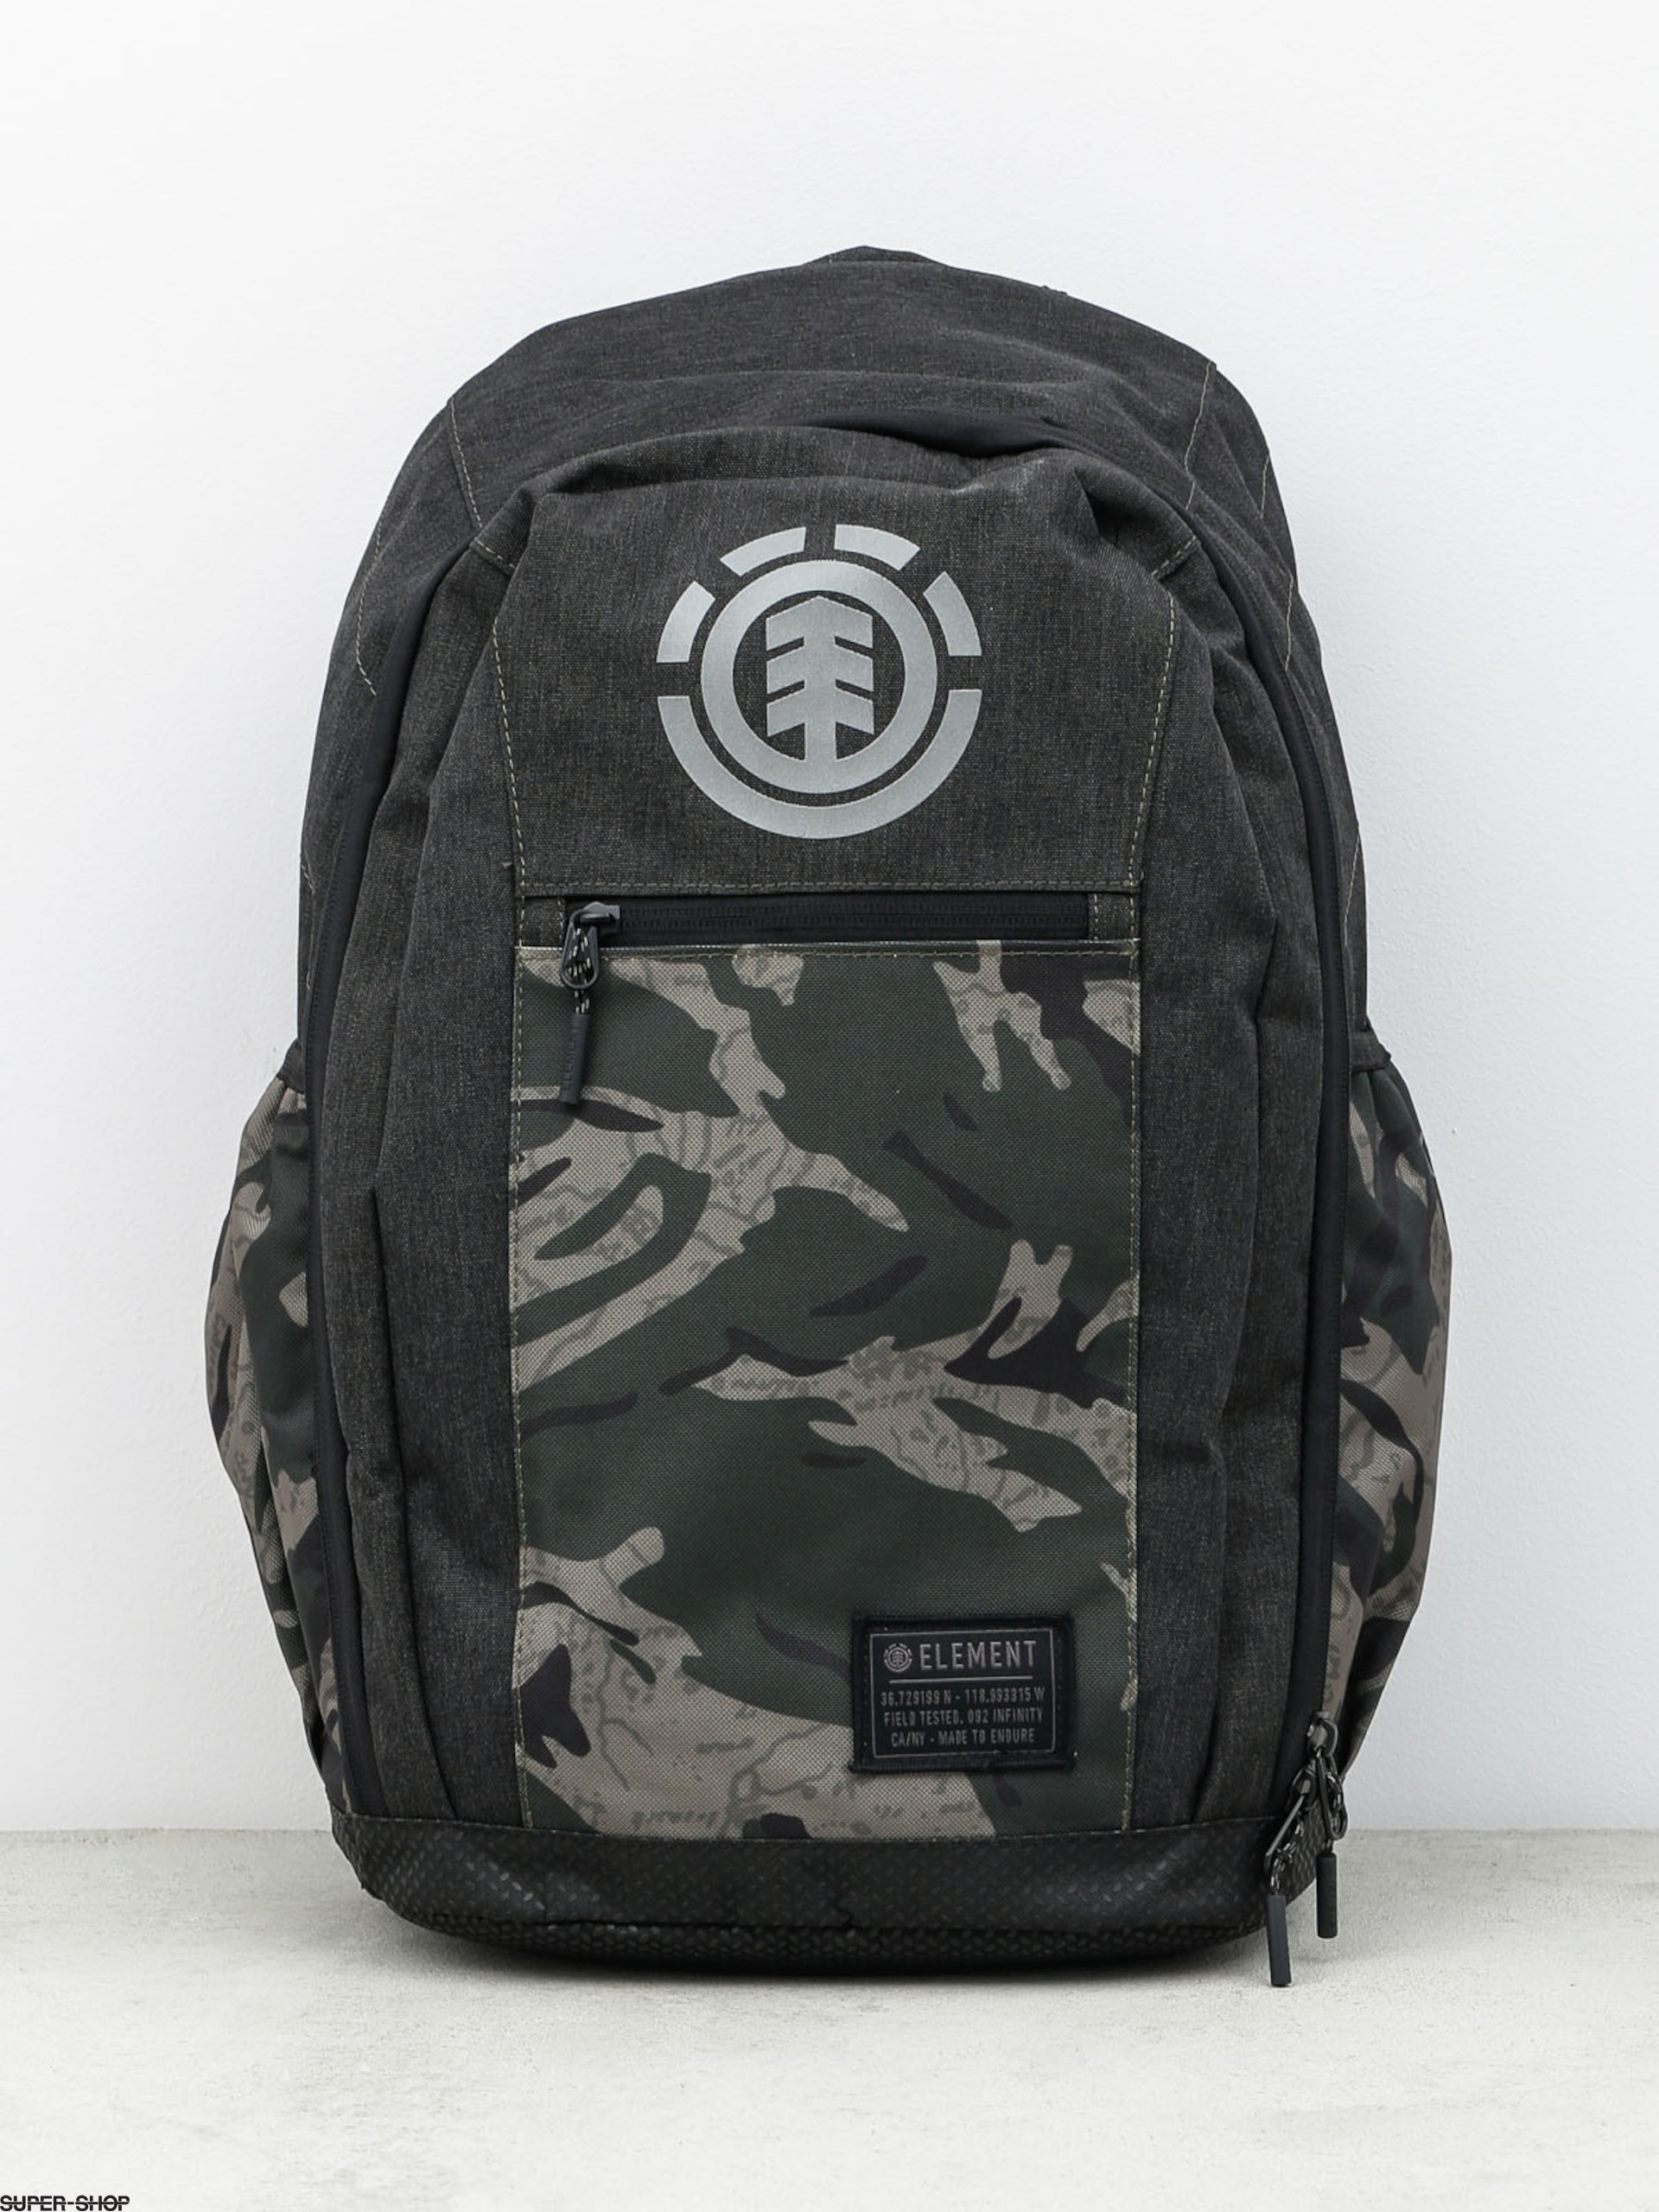 Element Rucksack Sparker (map camo)